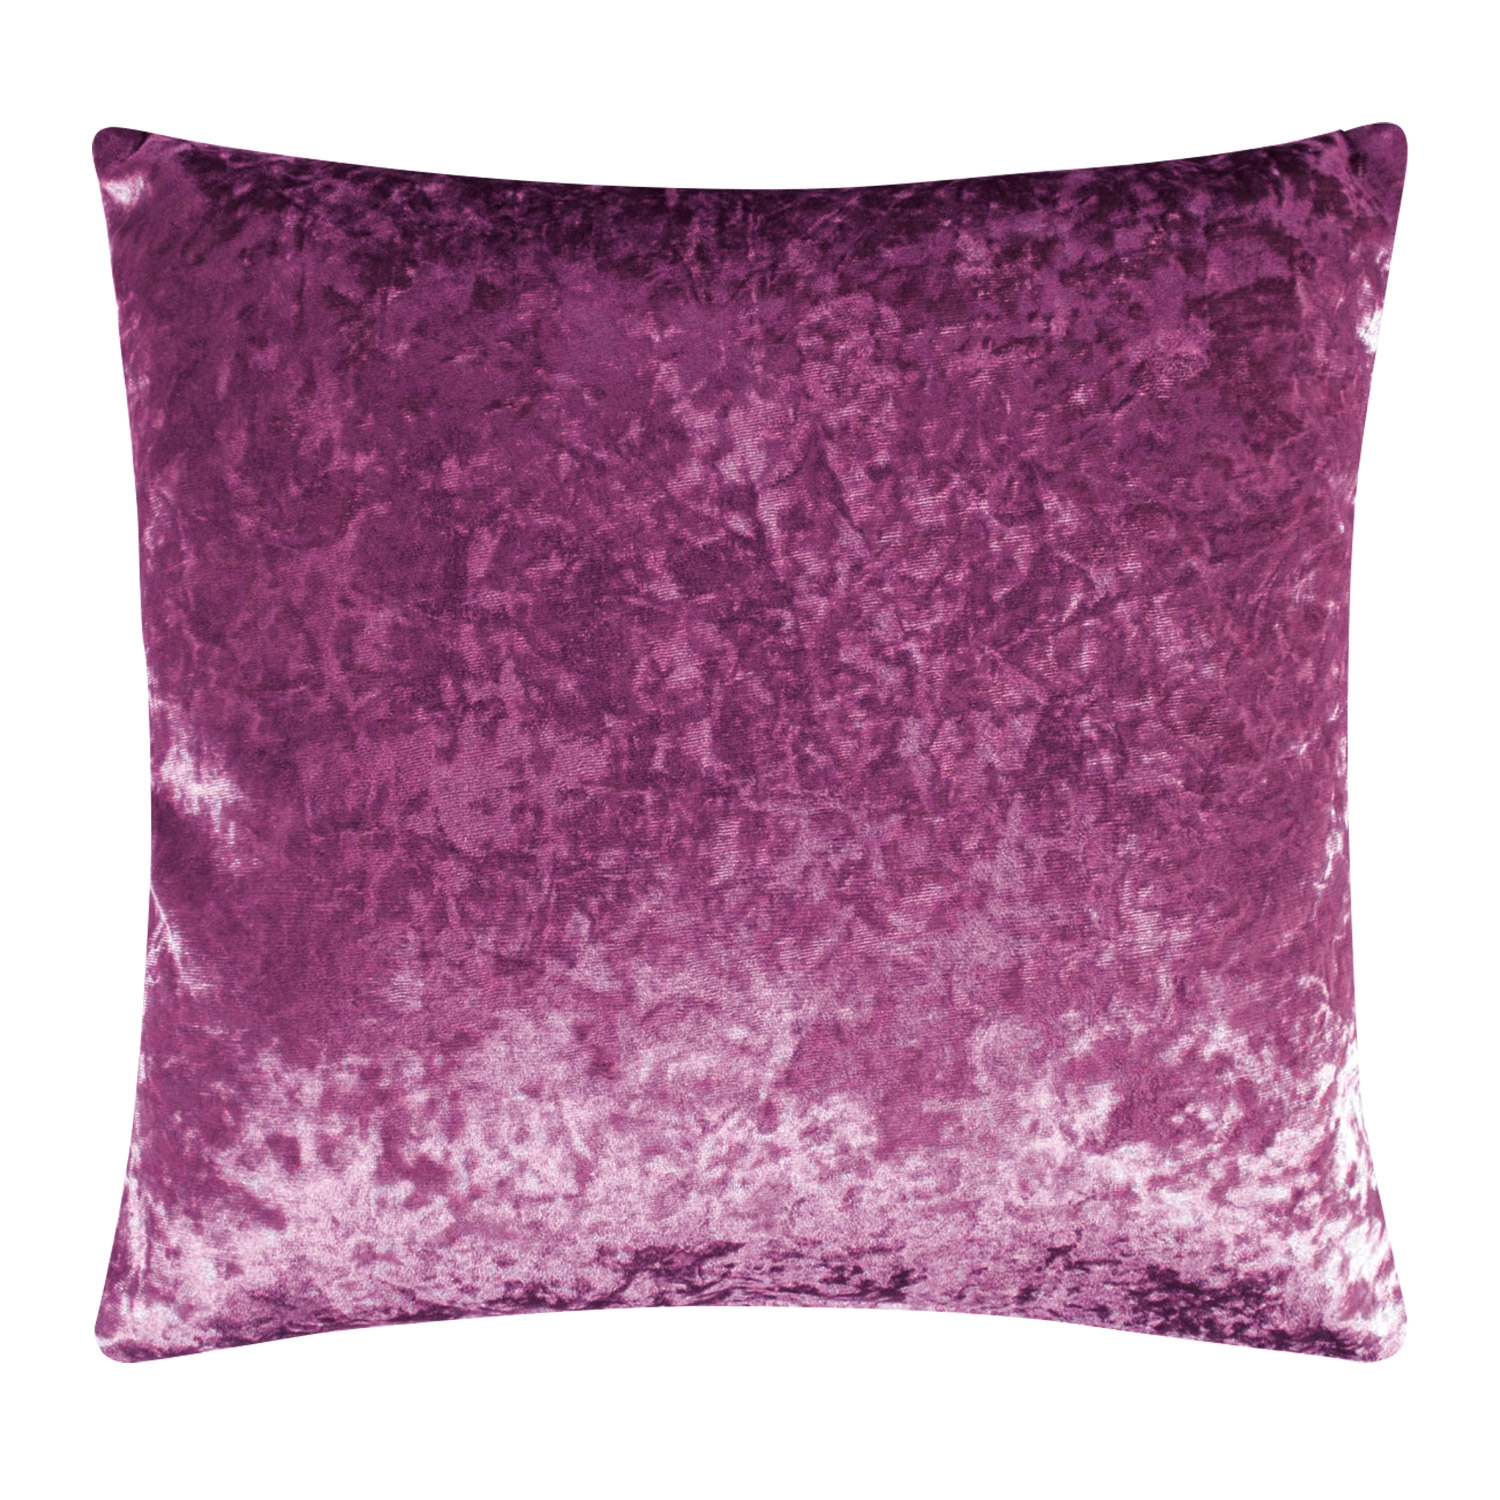 Elegance Allure Plum Crushed Velvet Luxury Filled Square Cushion